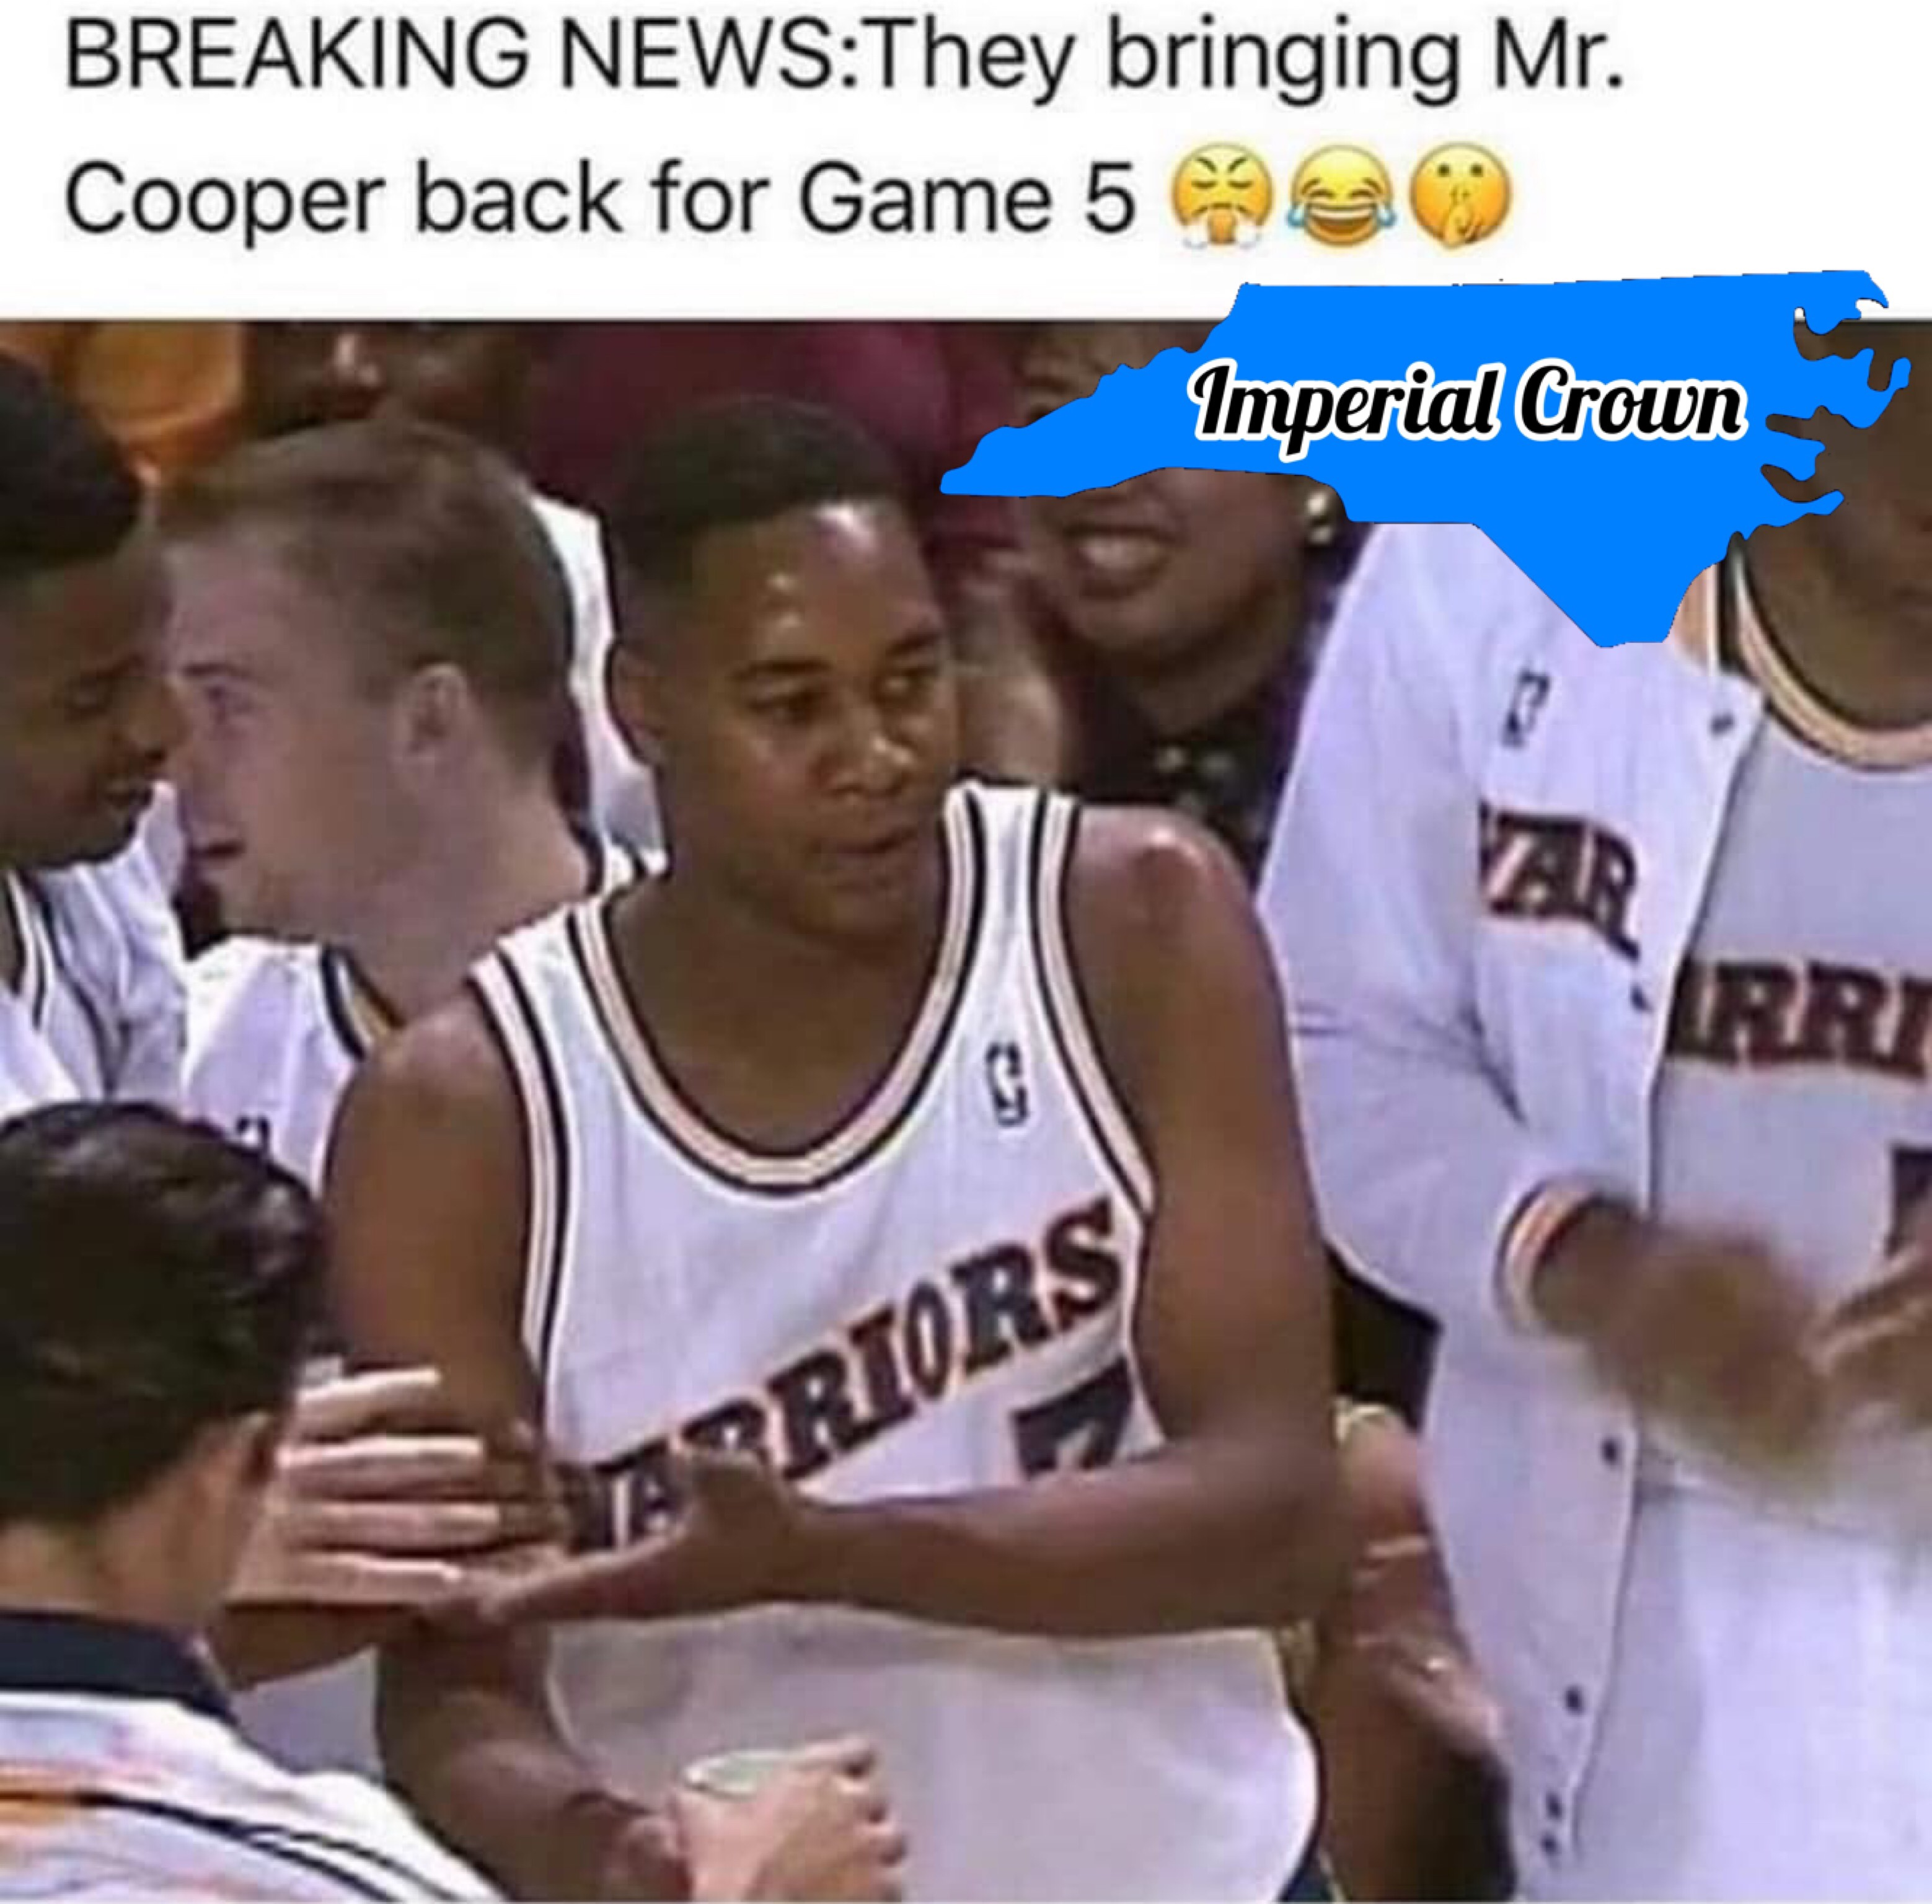 They bringing Mr. Cooper back for game 5